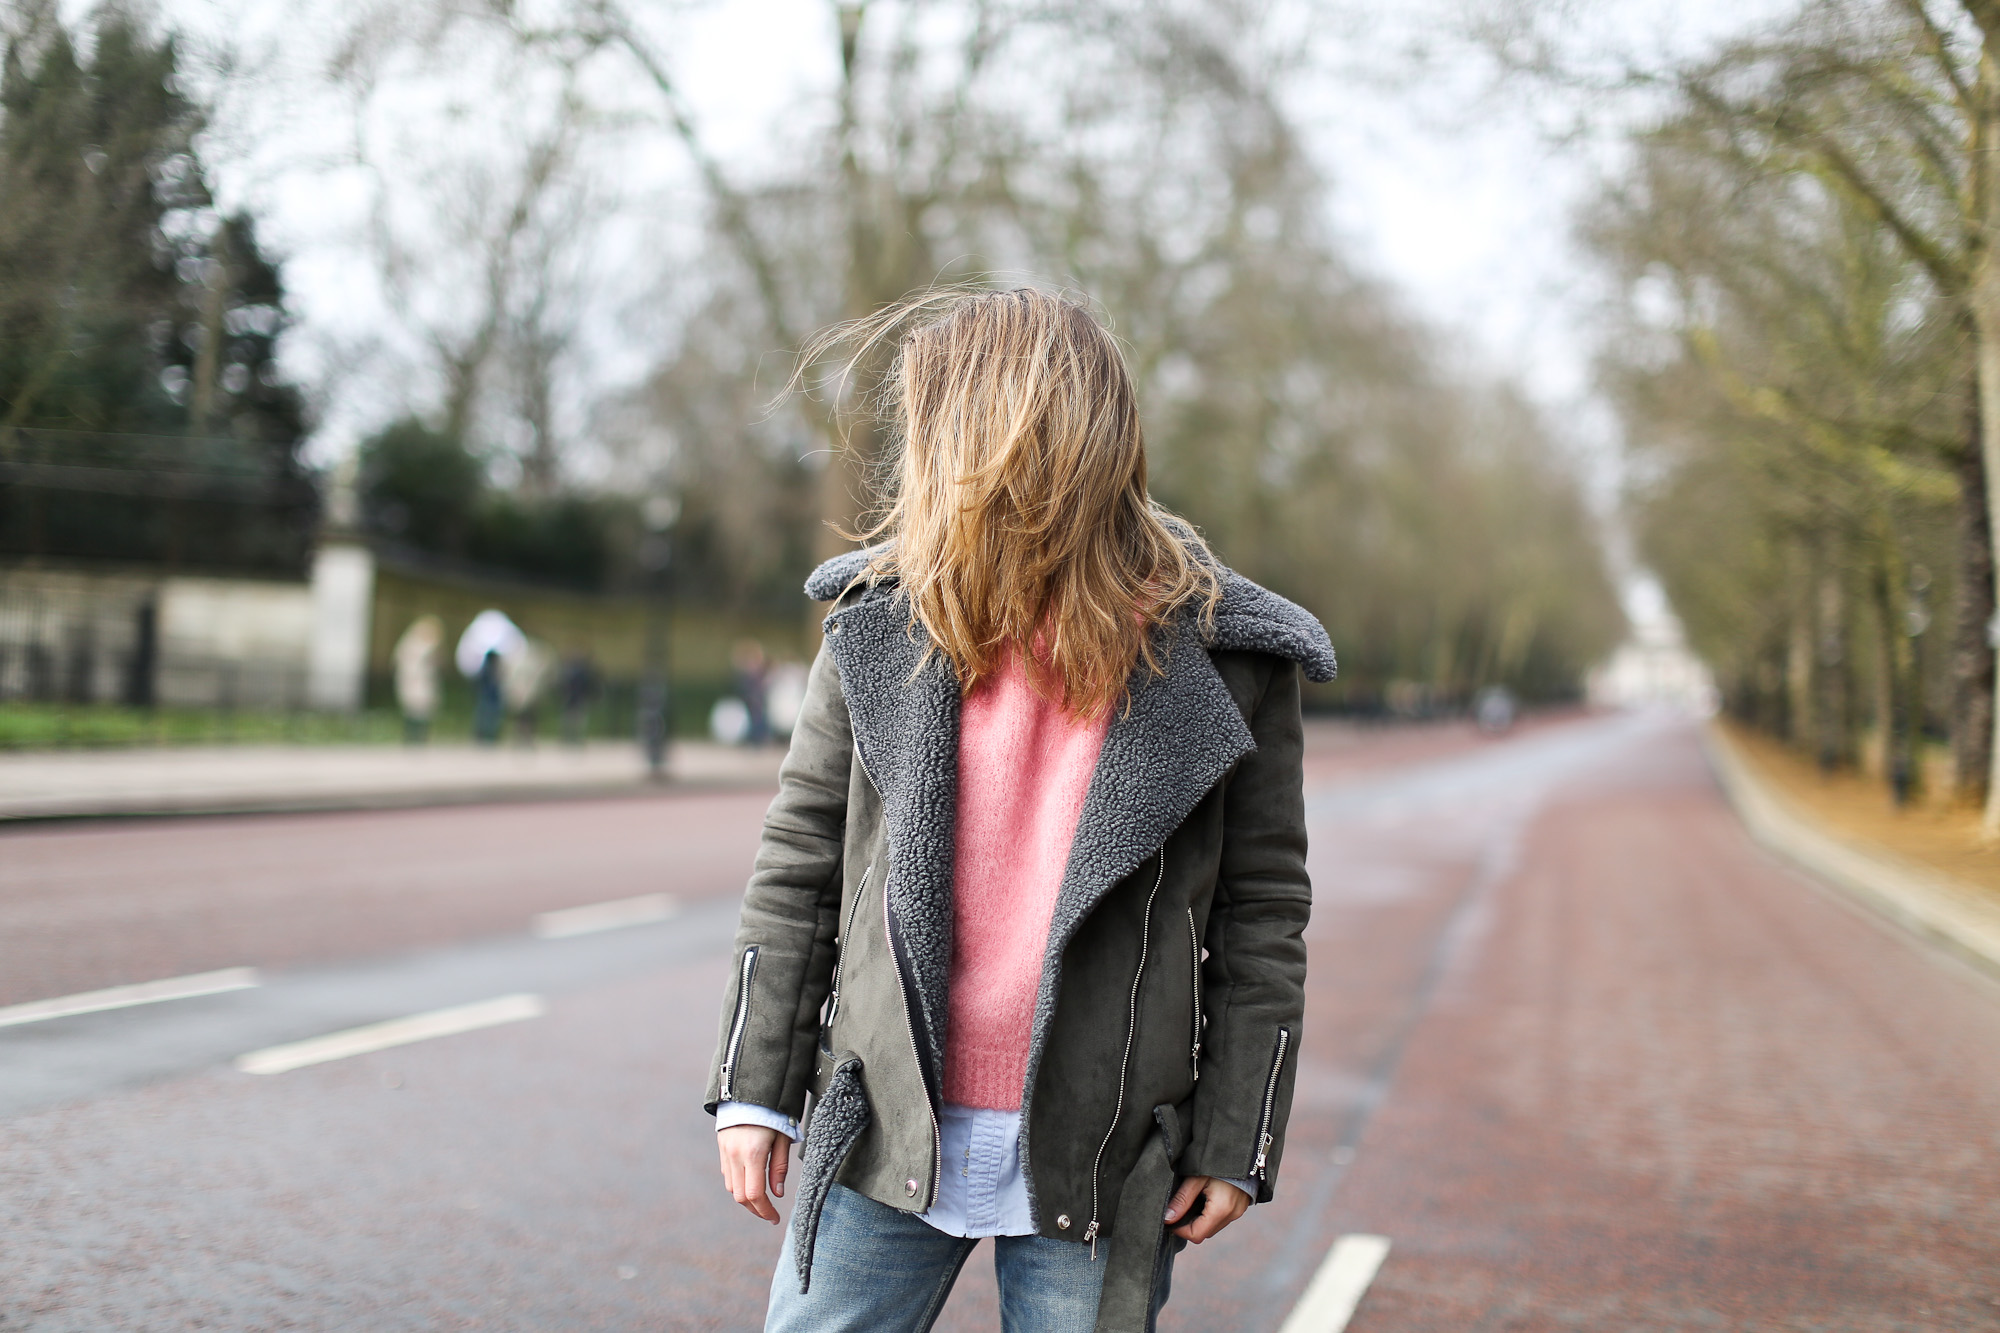 Clochet_streetstyle_london_fashion_week_bimba&lola_pink_mohair_knit-3